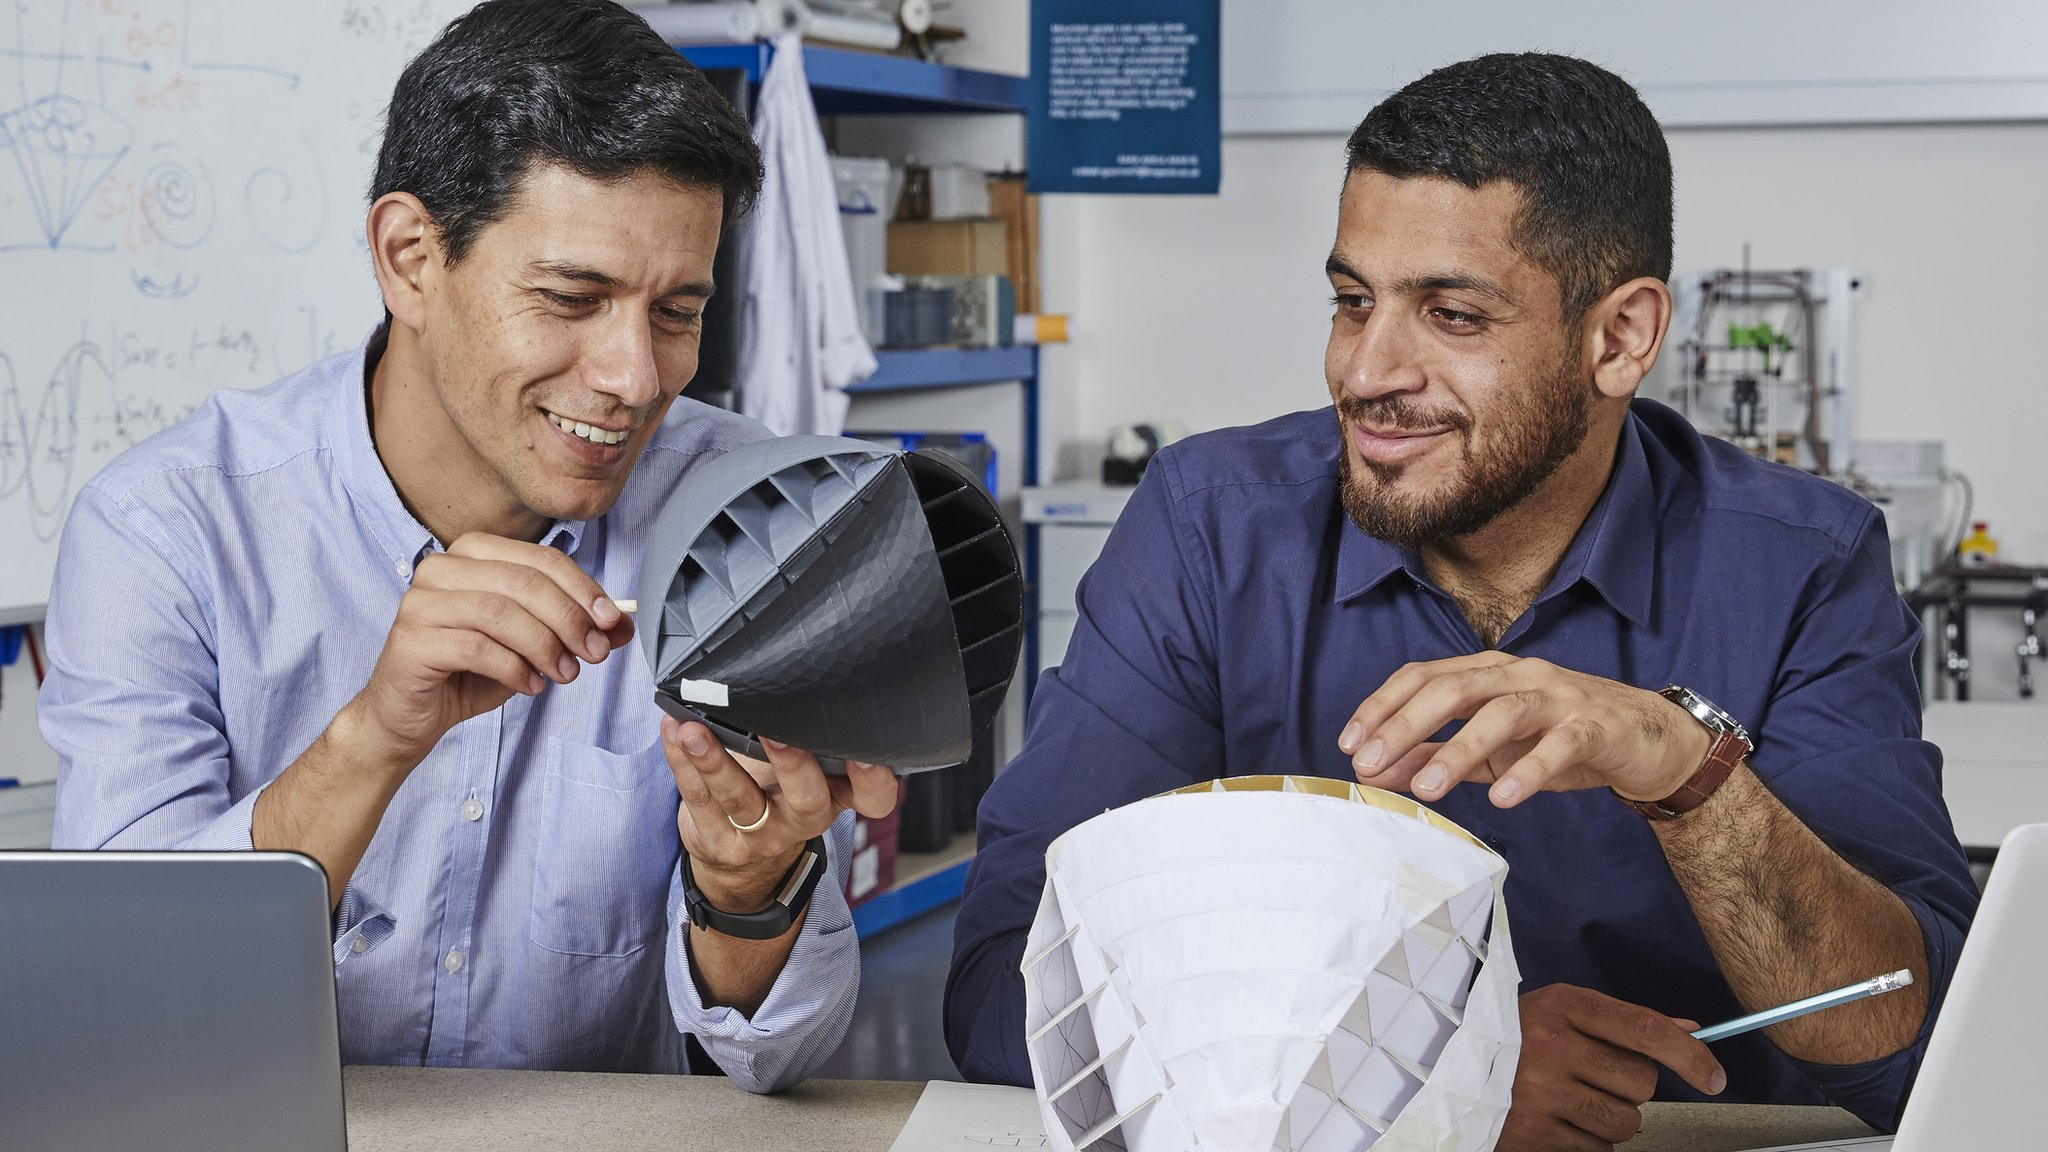 Urban wind turbine wins UK James Dyson award